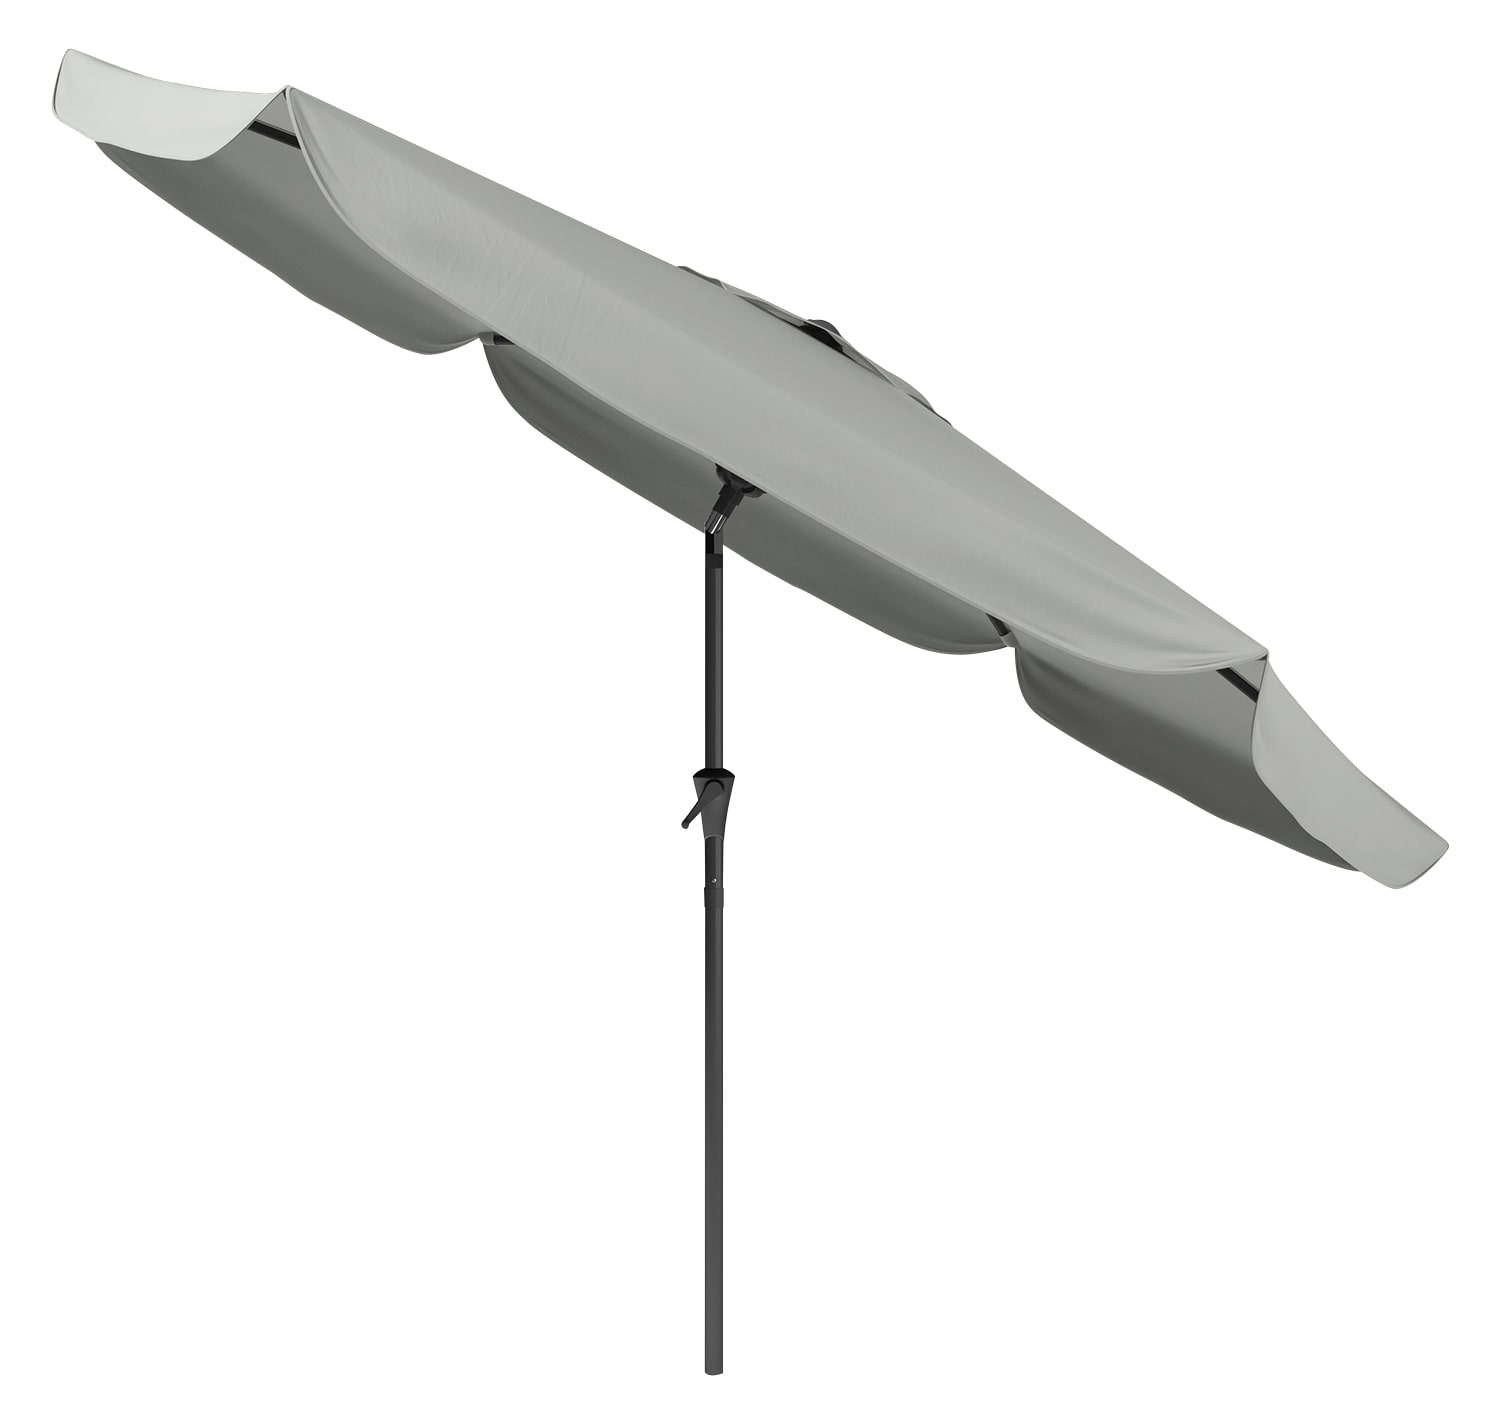 Tilting-Top Patio Umbrella – Sand Grey